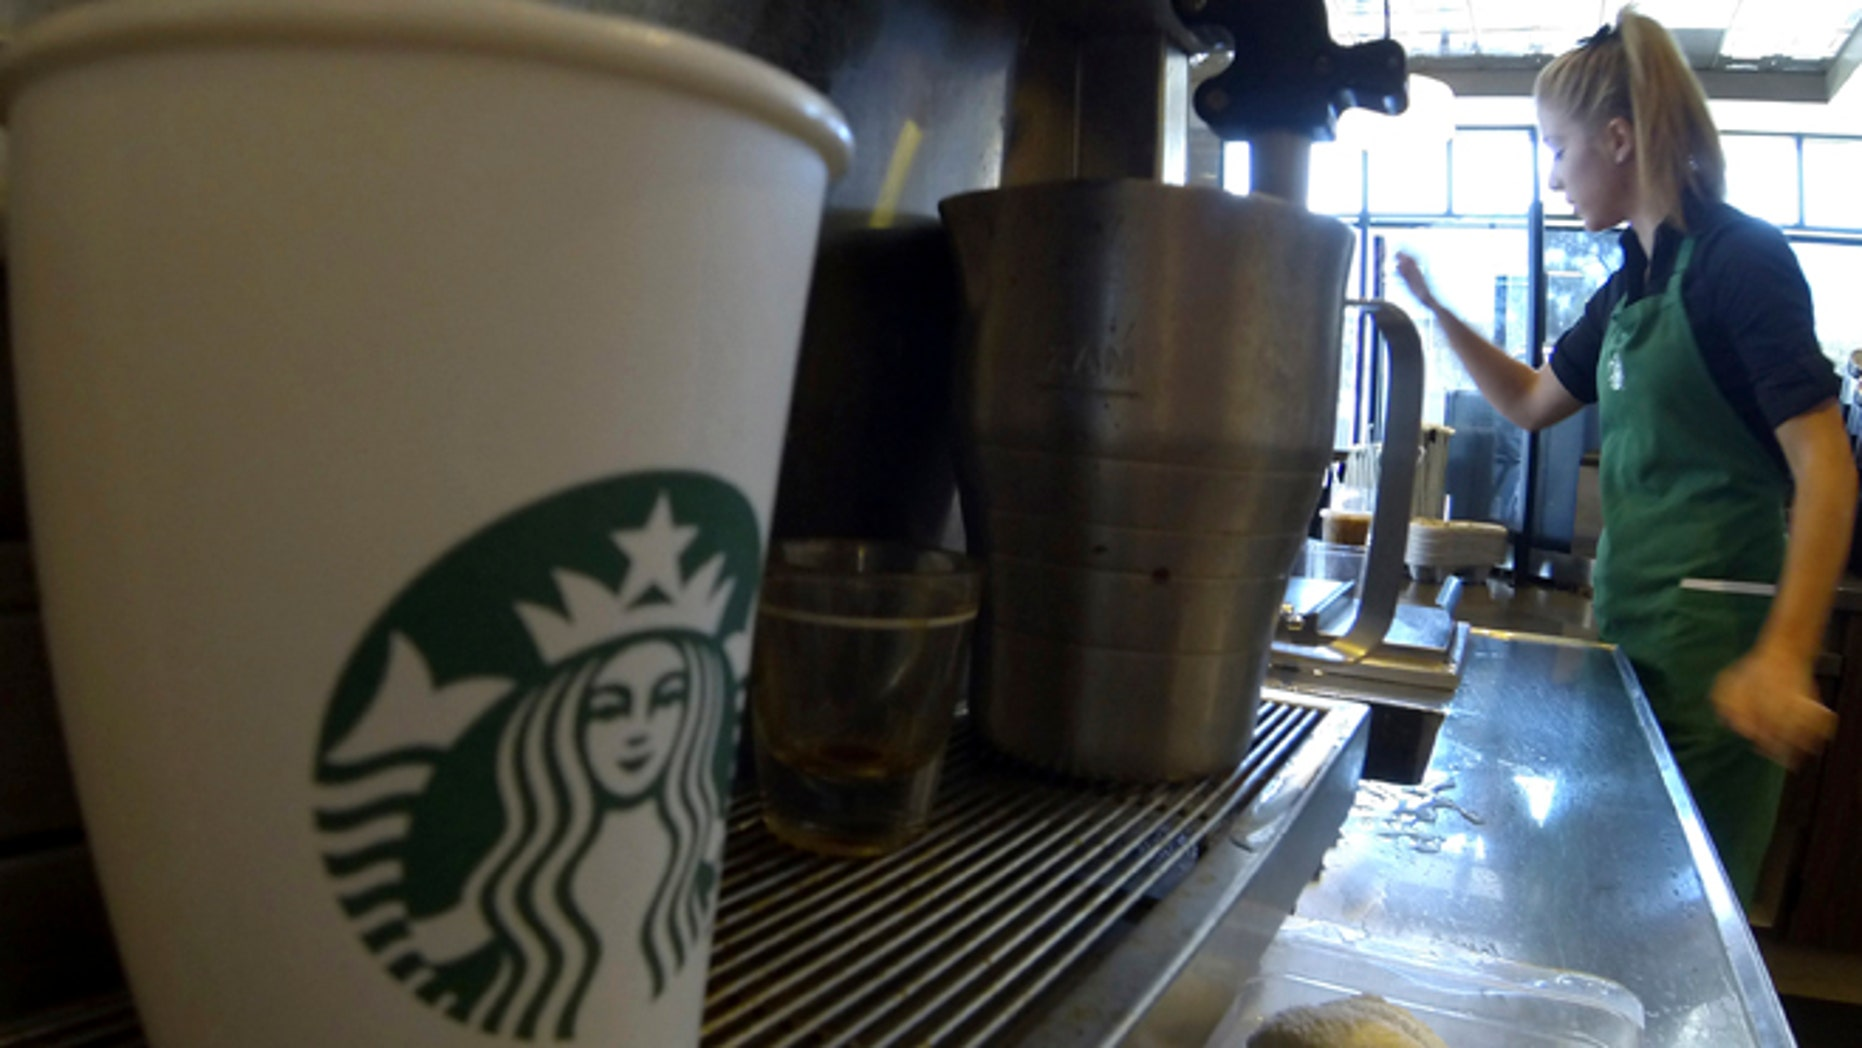 """Starbucks says it will expand alcohol sales to """"thousands of select stores"""" over the next several years, although it didn't provide an exact timeline. (Reuters)"""